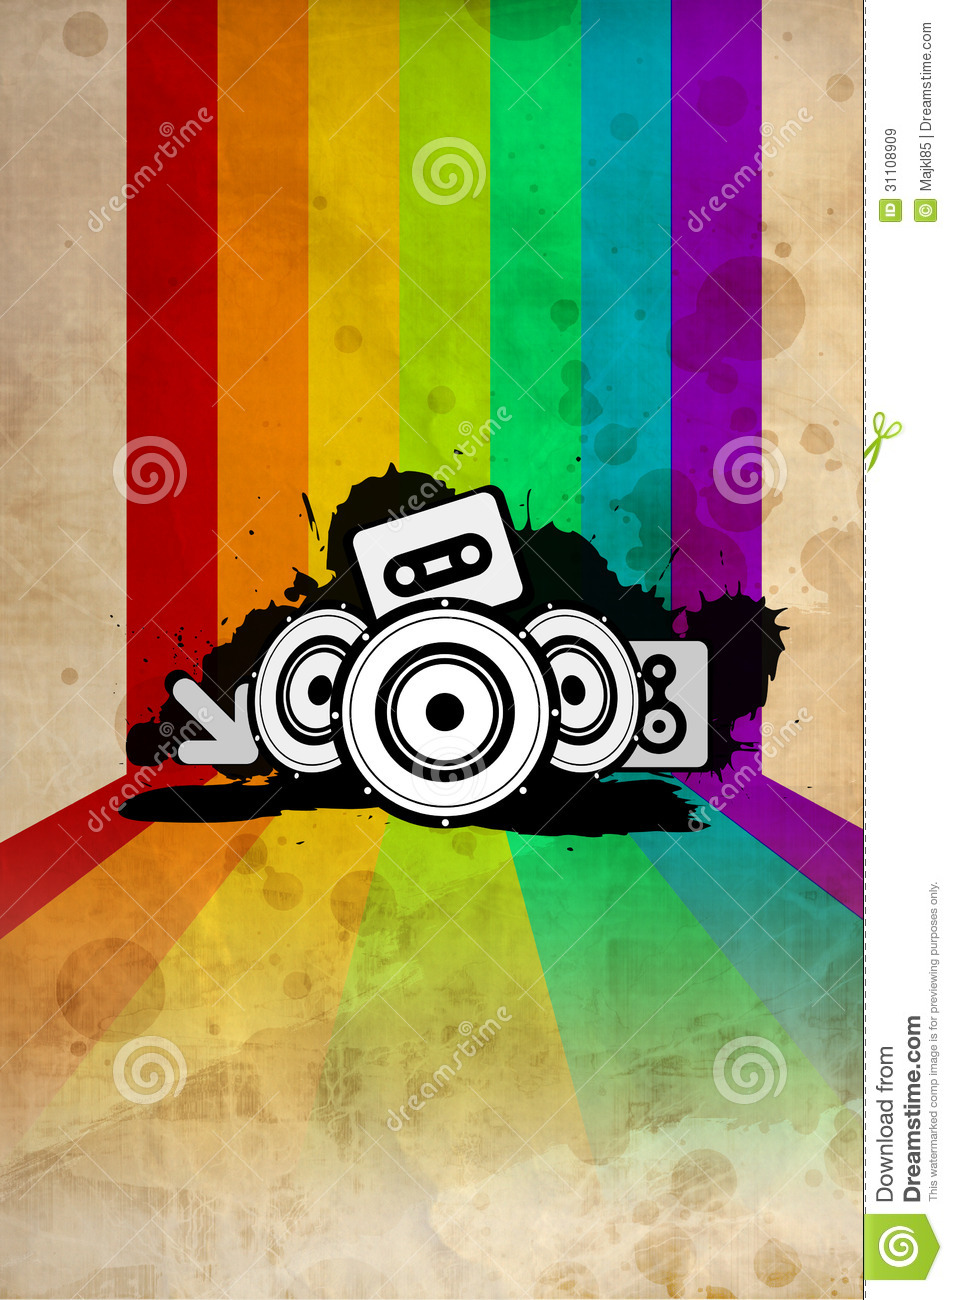 80s poster design - Royalty Free Stock Photo